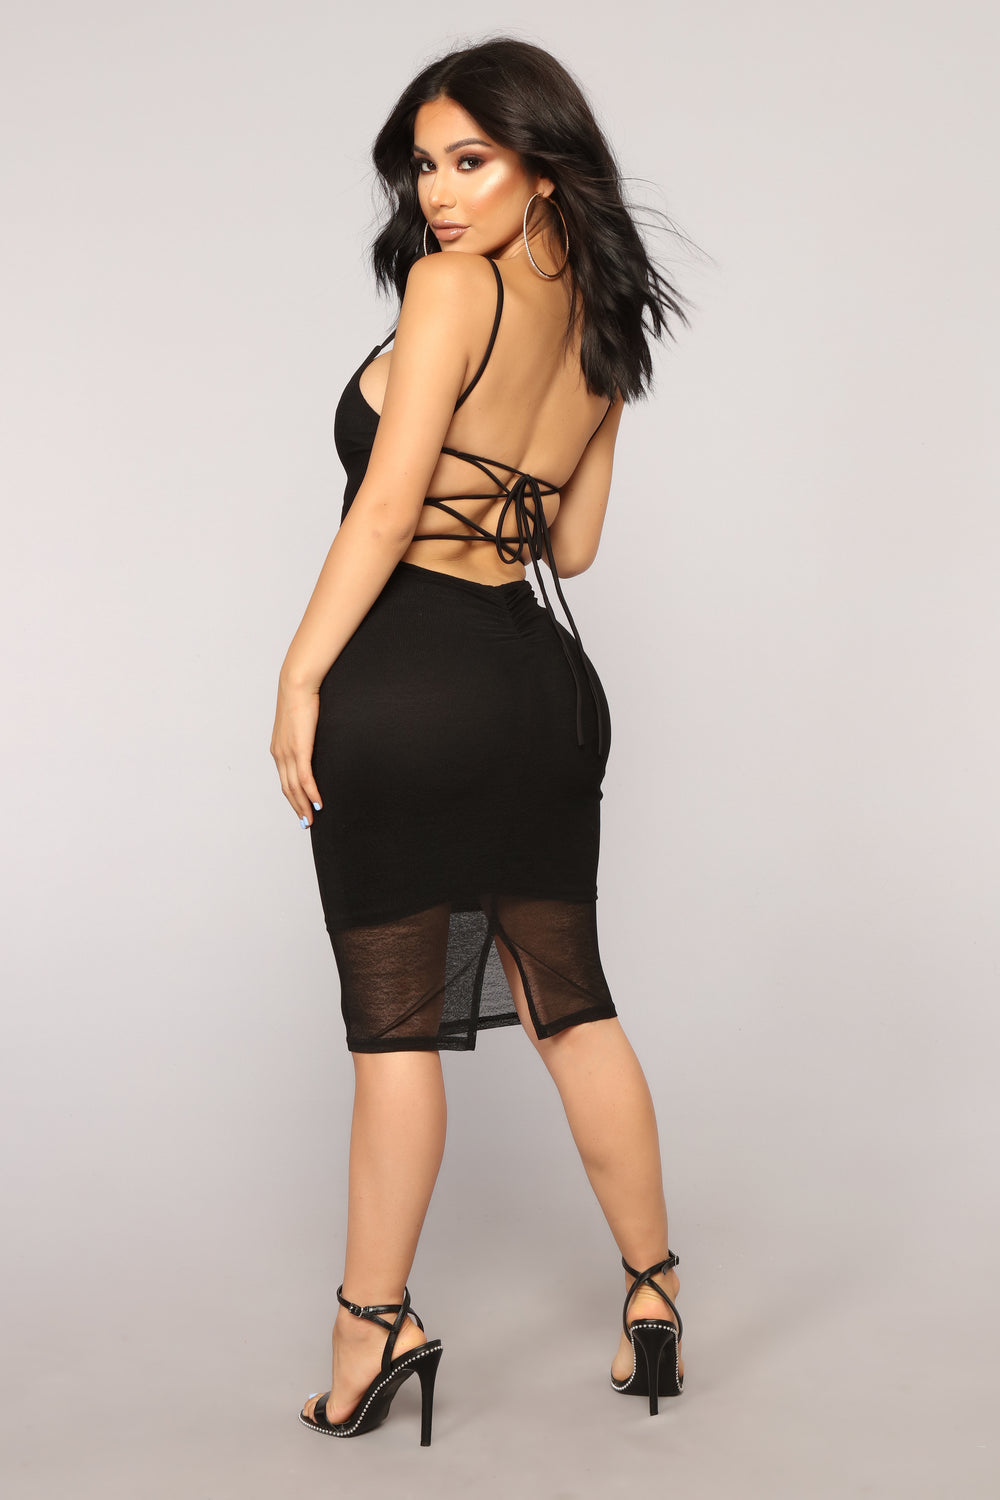 Heart Breaker Dress - Black